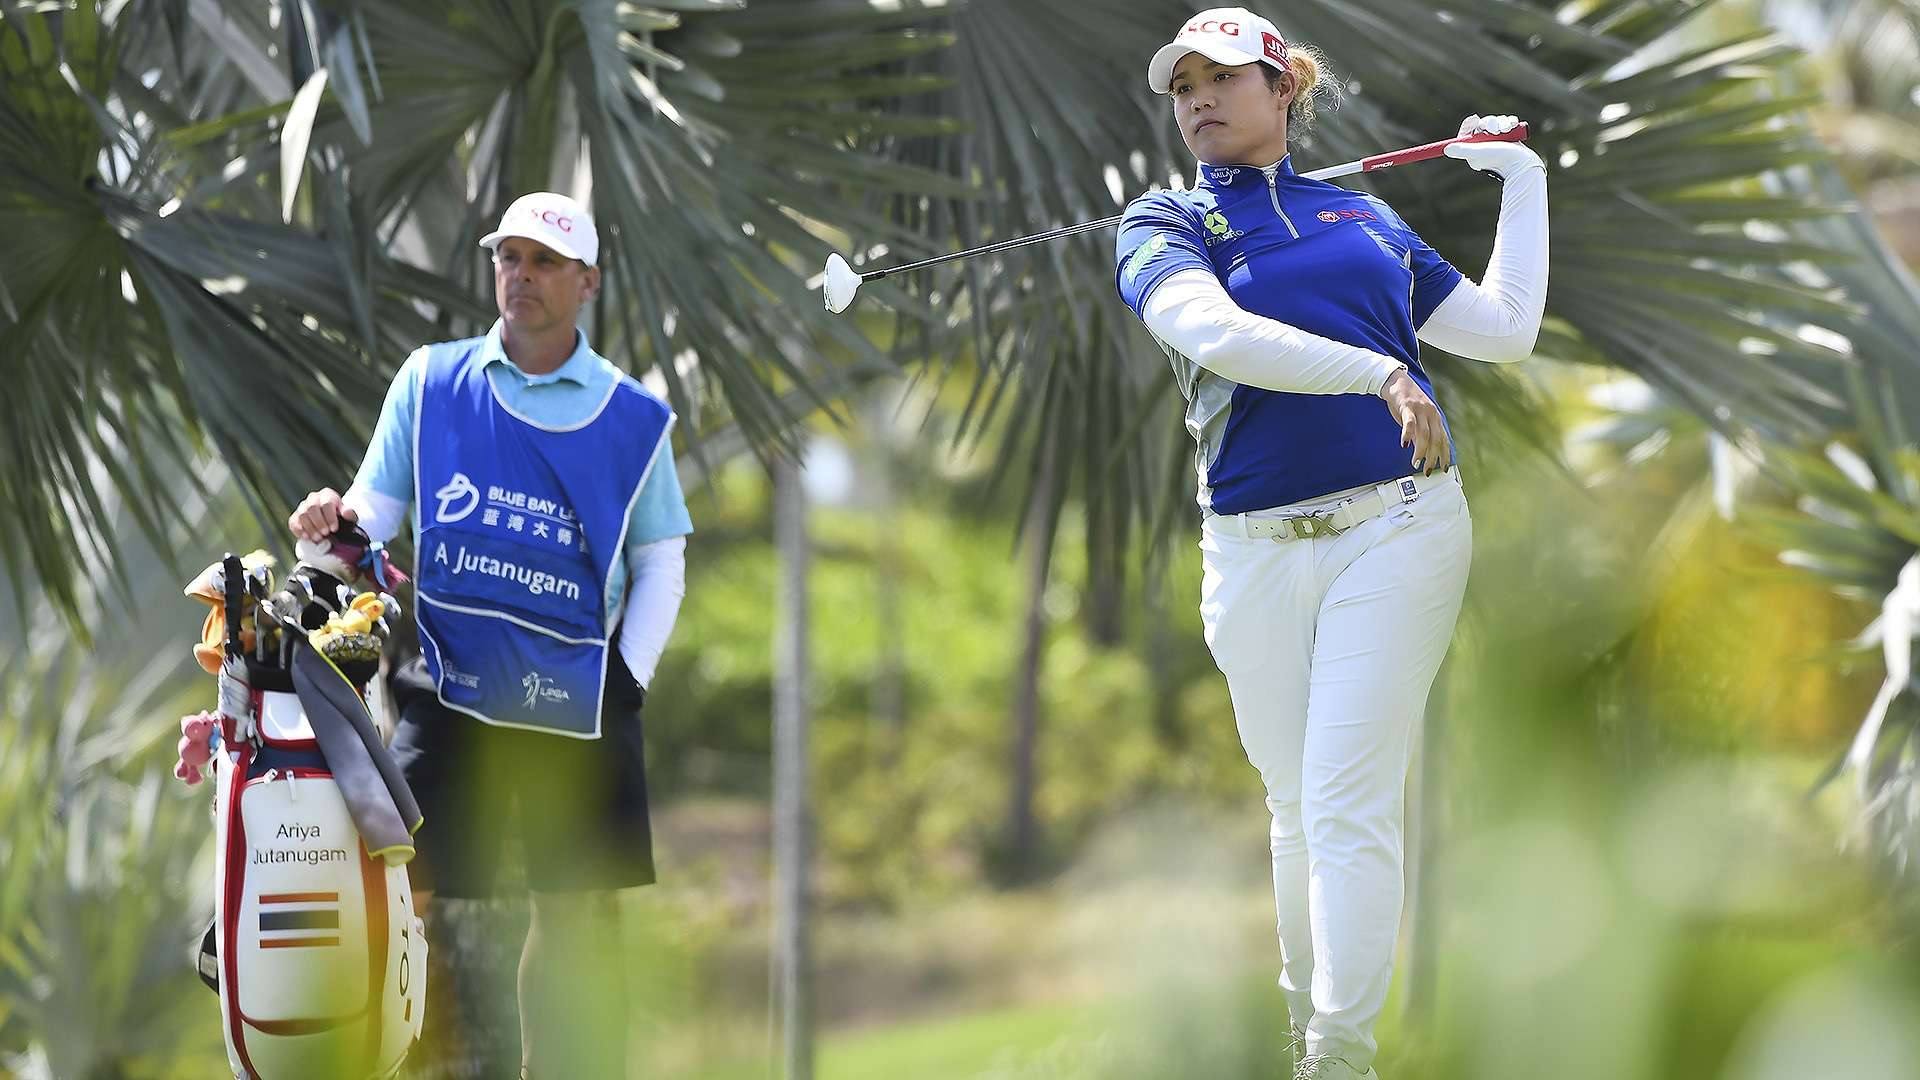 Ariya Jutanugarn at the 2018 Blue Bay LPGA